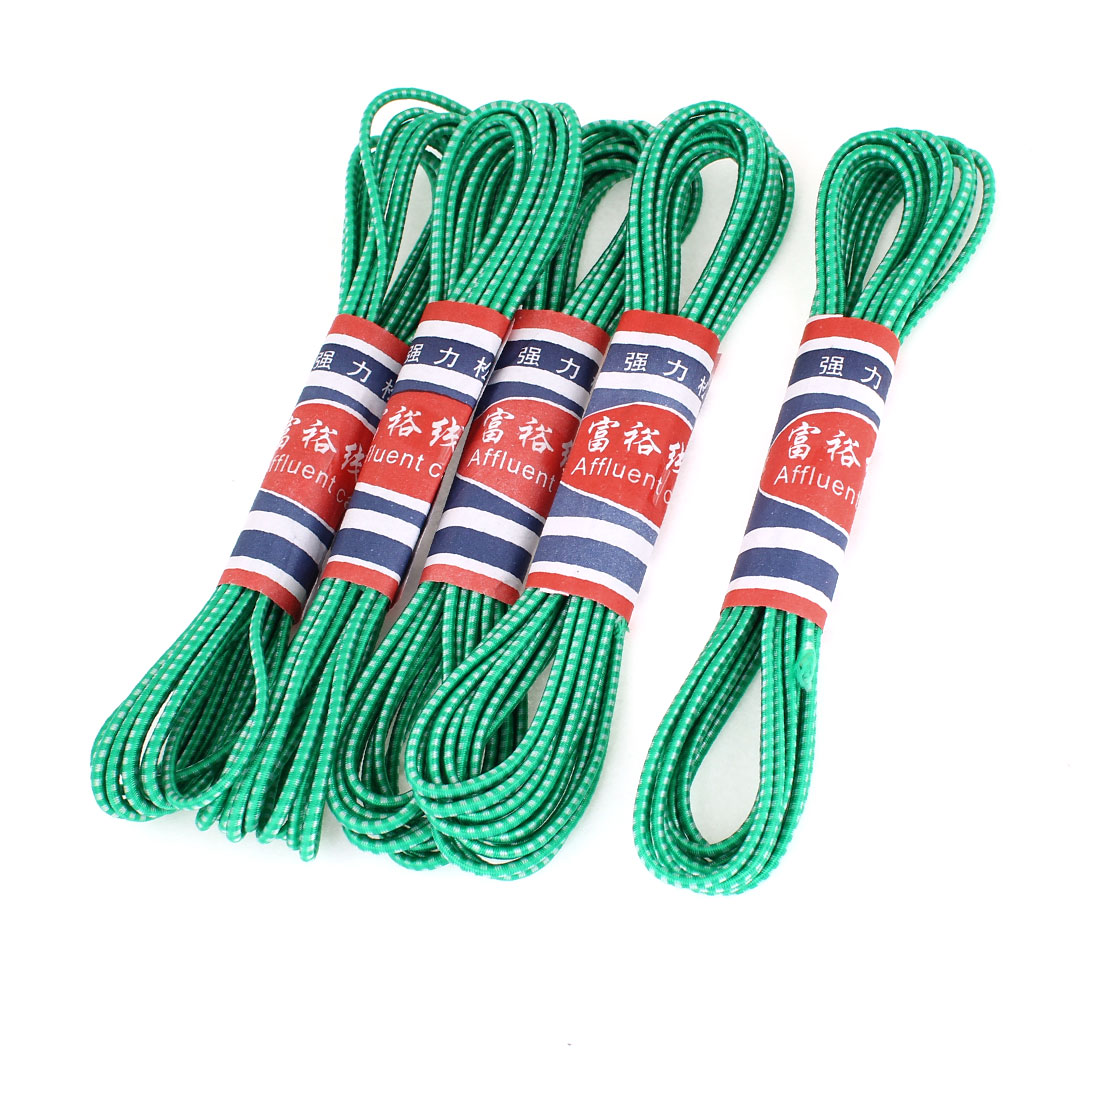 5 Pcs Replacing 3mm Dia Green Round Stretchy Belt Band 4.1M Length for Trousers